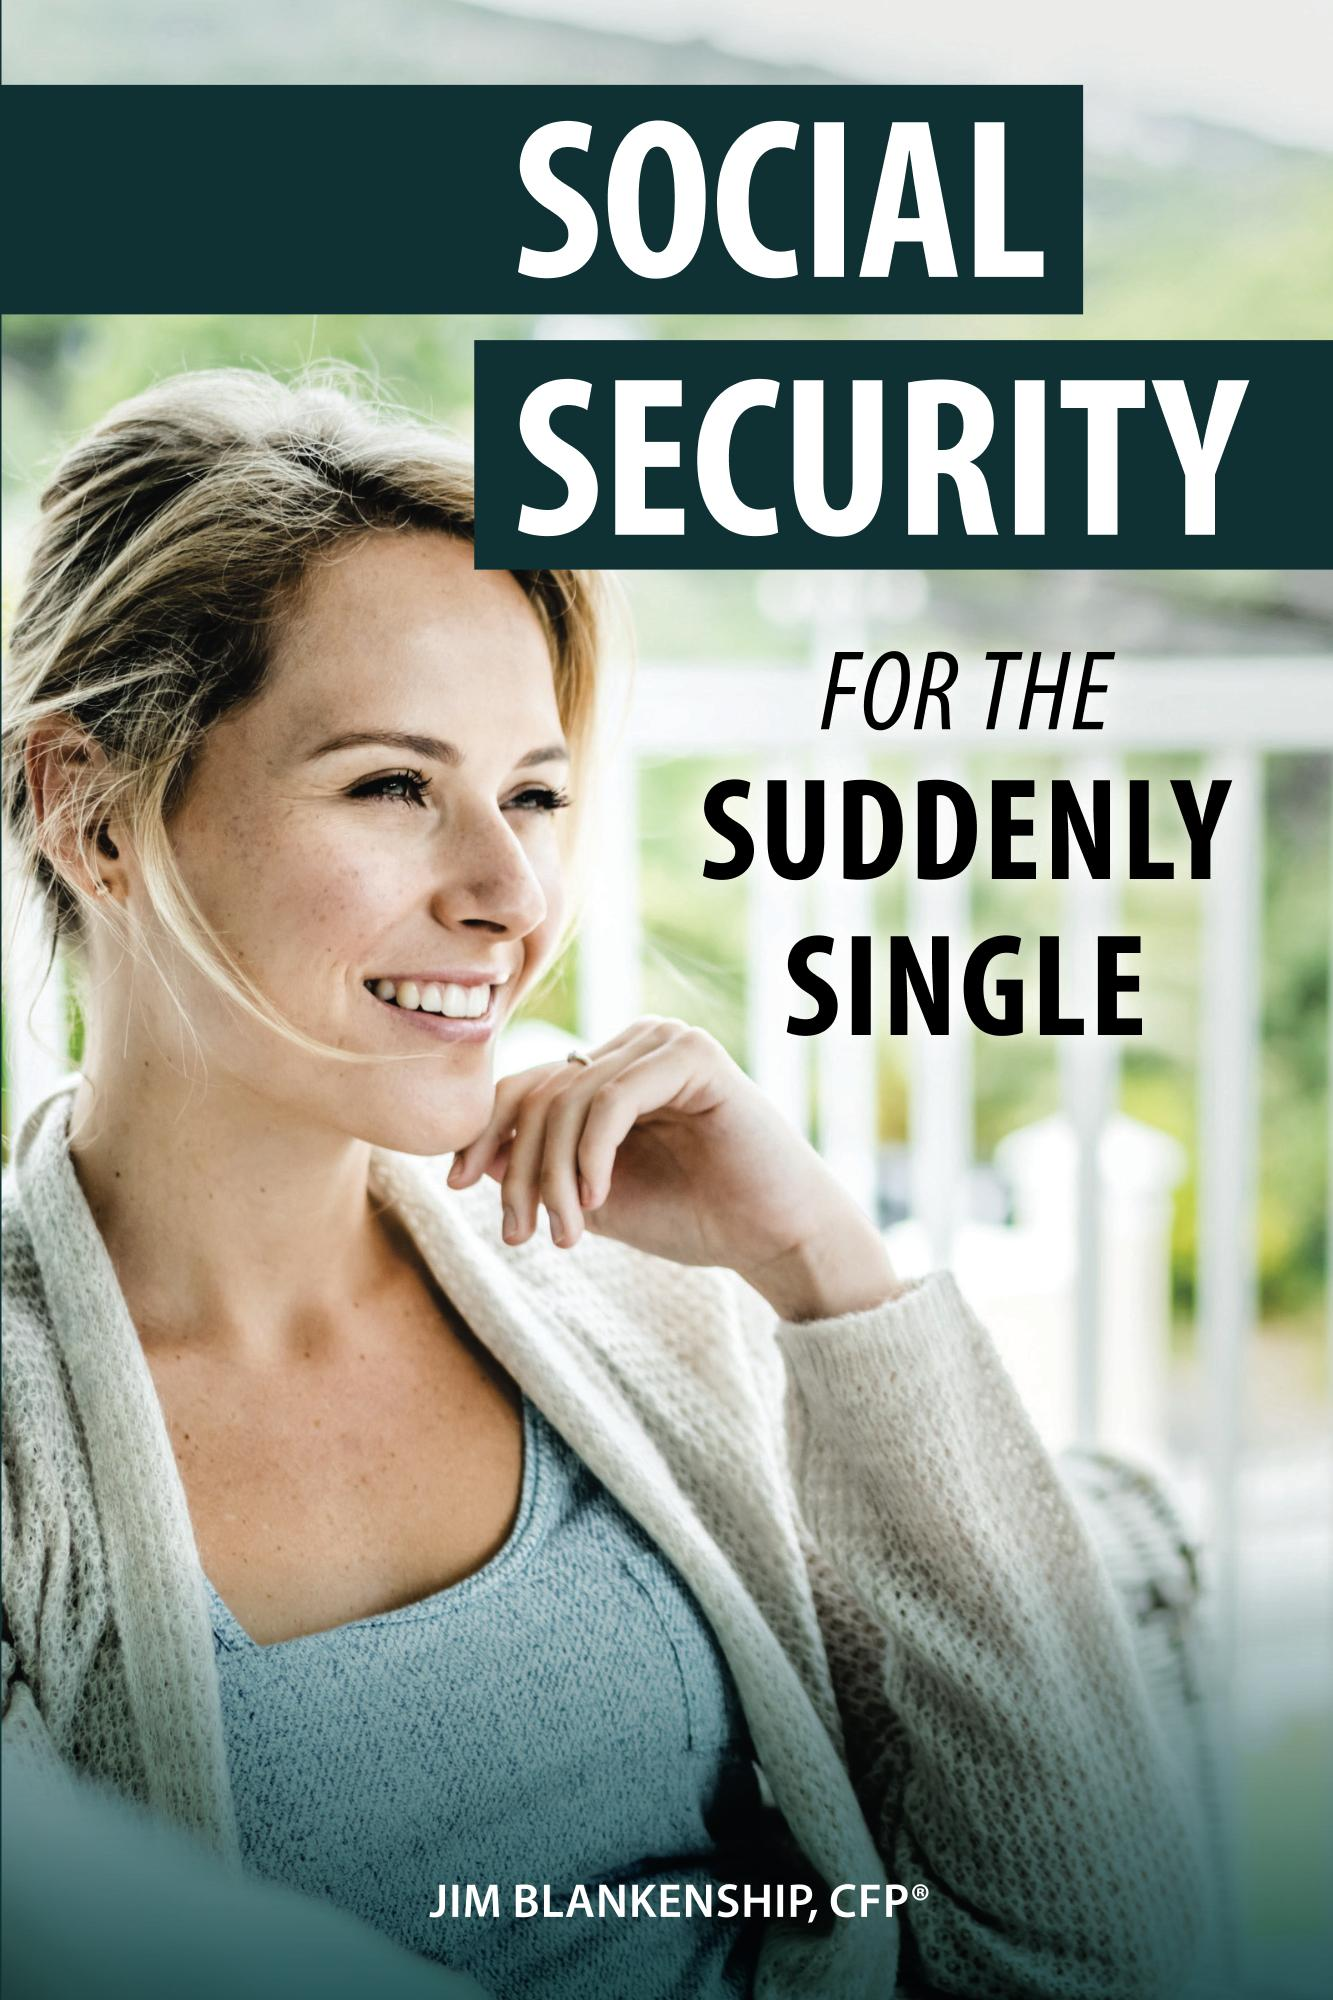 Social Security for the Suddenly Single